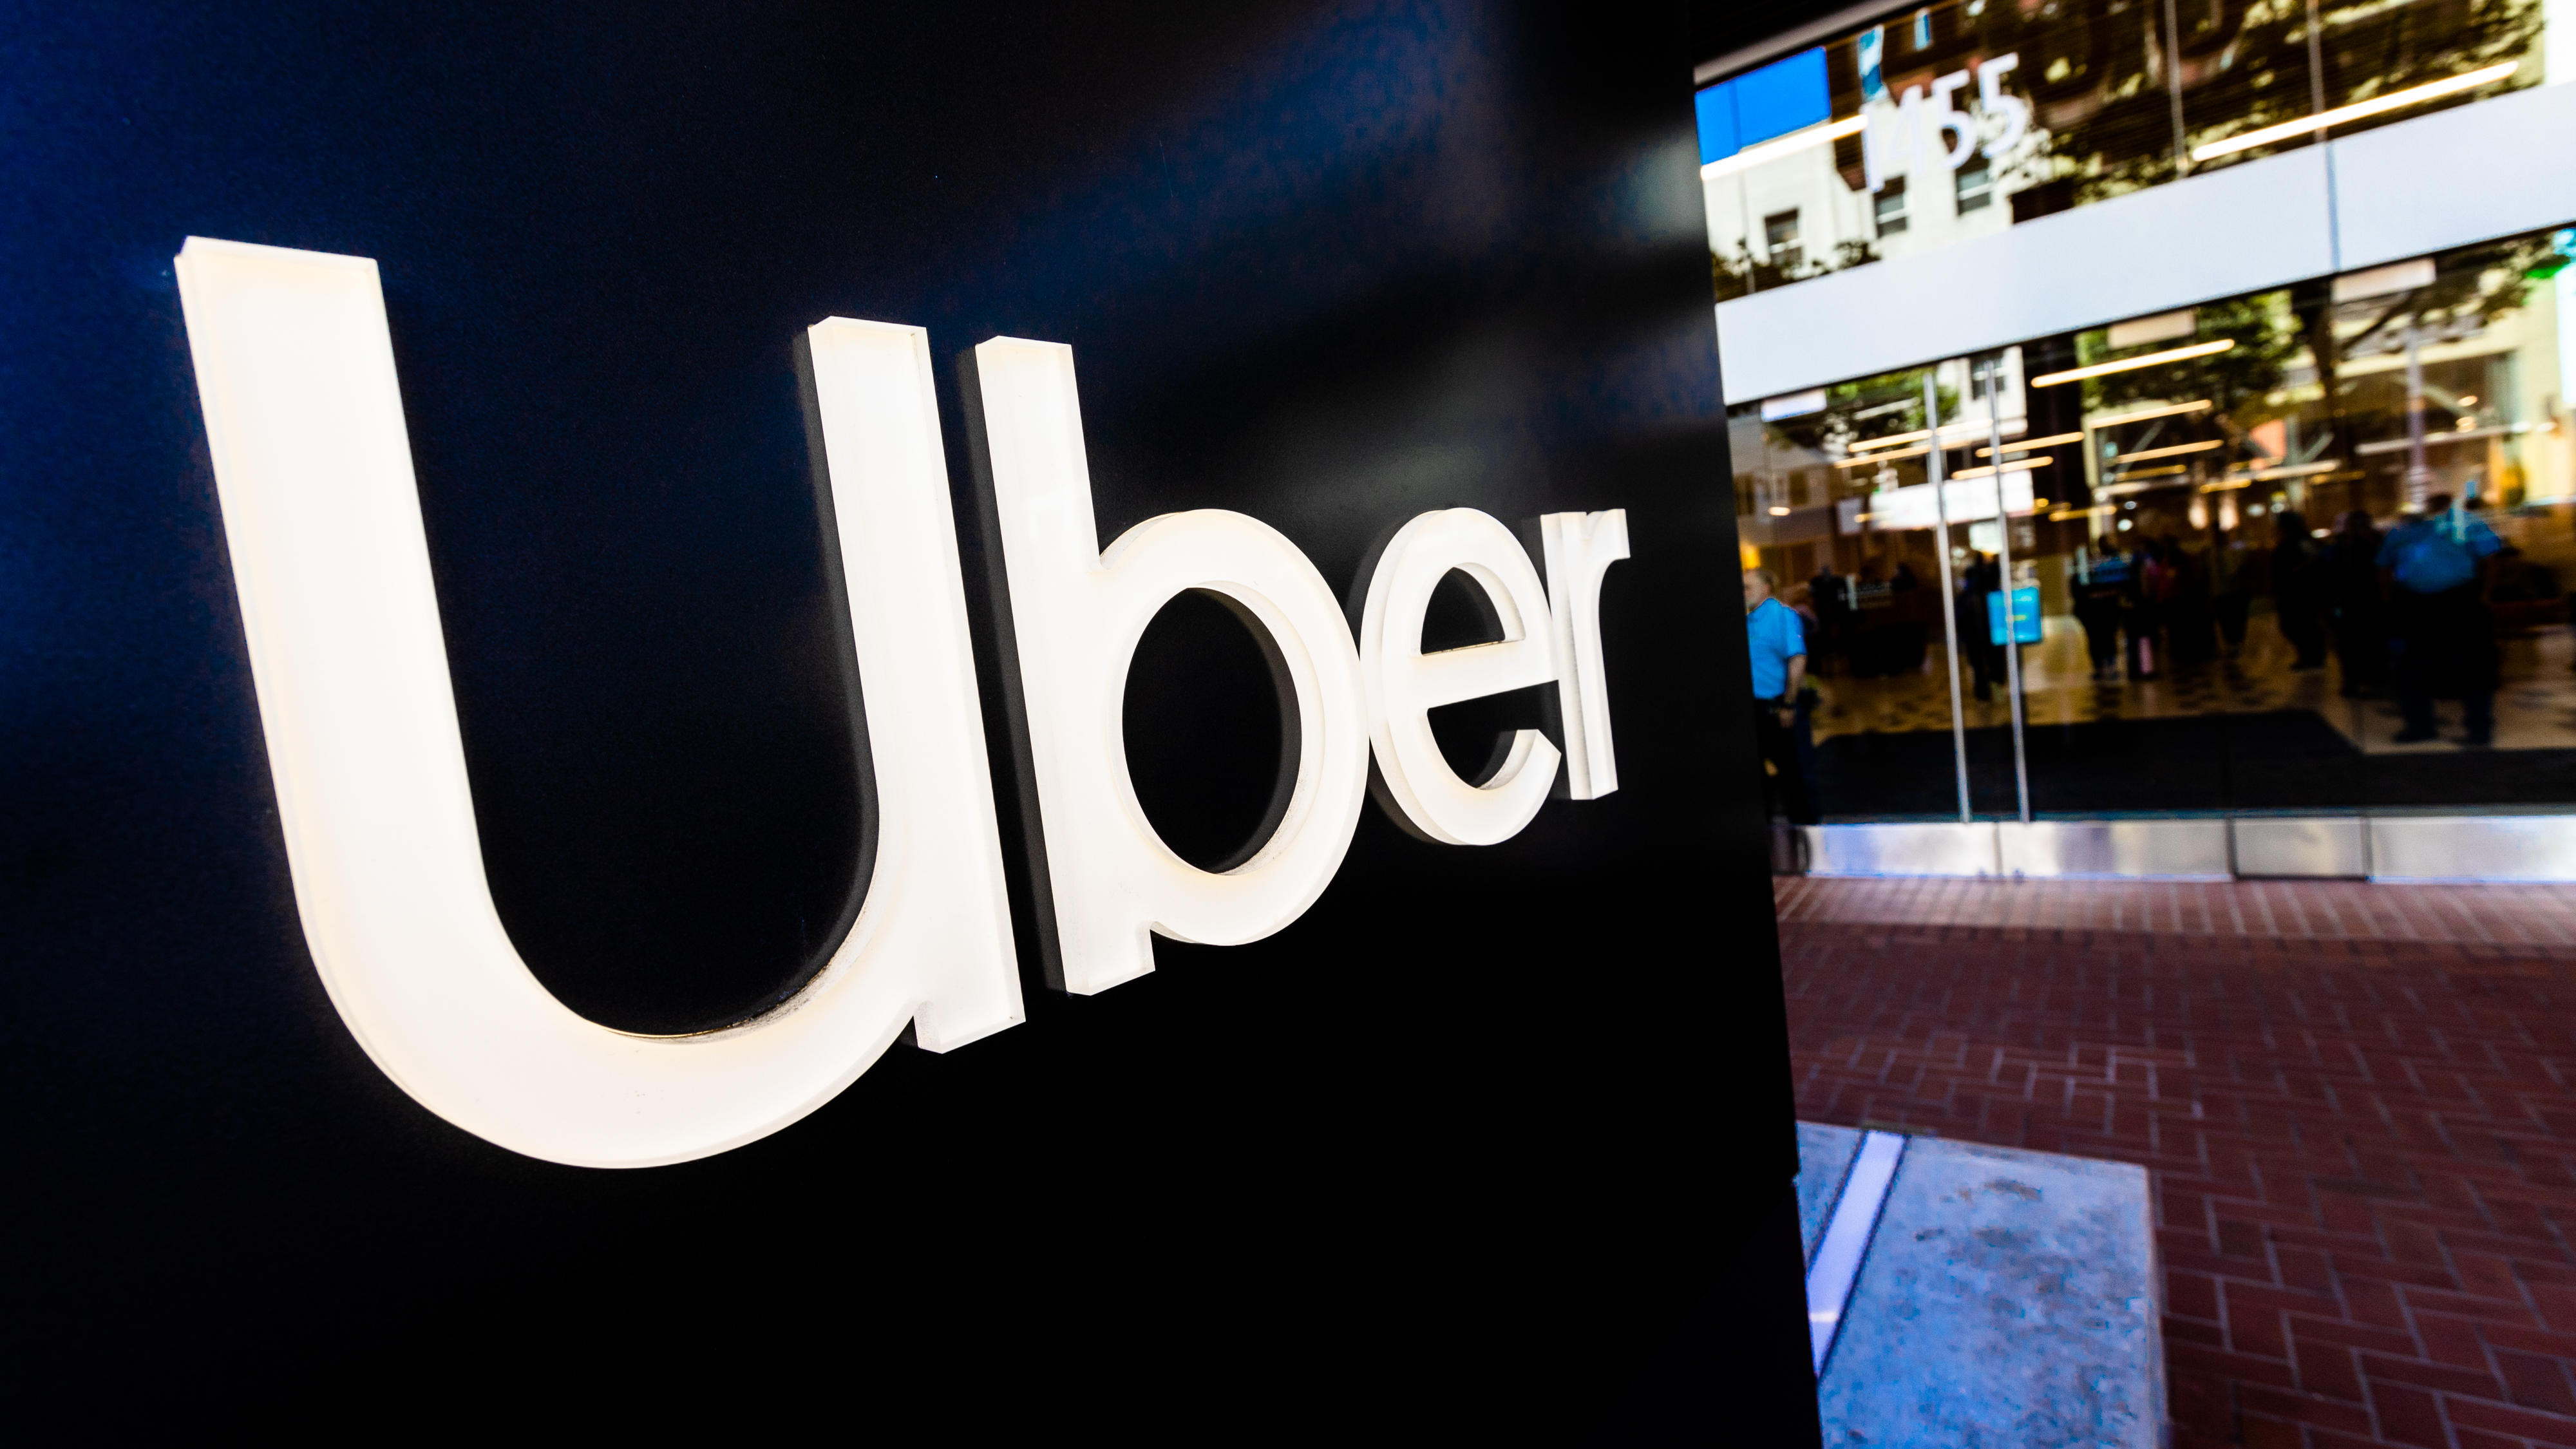 uber-driver-ride-sharing-protest-unions7782